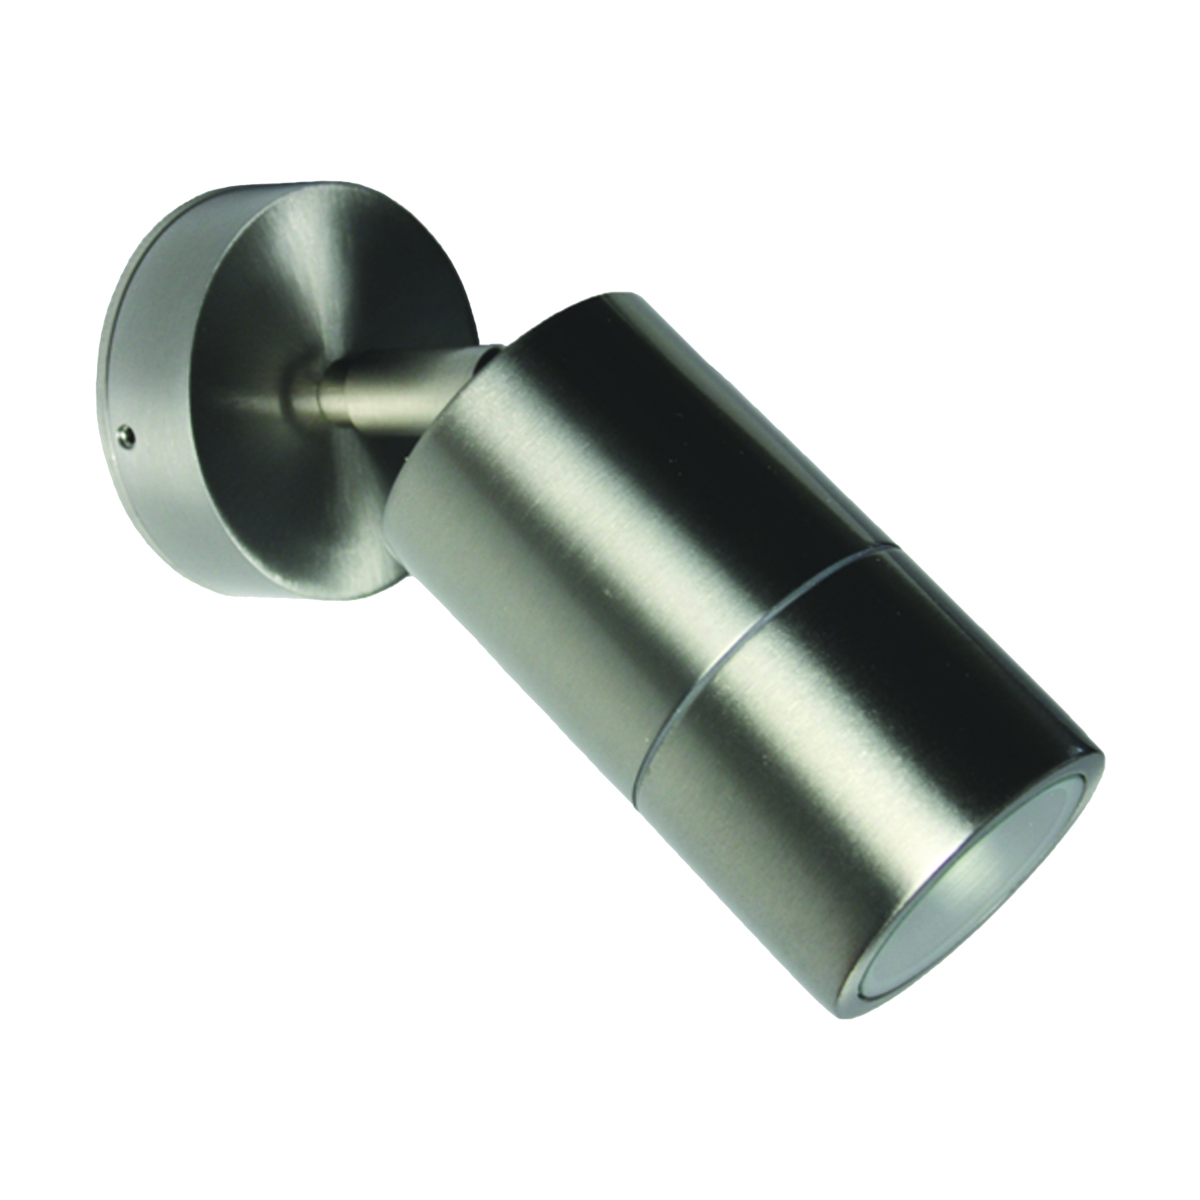 1 Light Single Adjustable 316 Marine Grade Stainless Steel